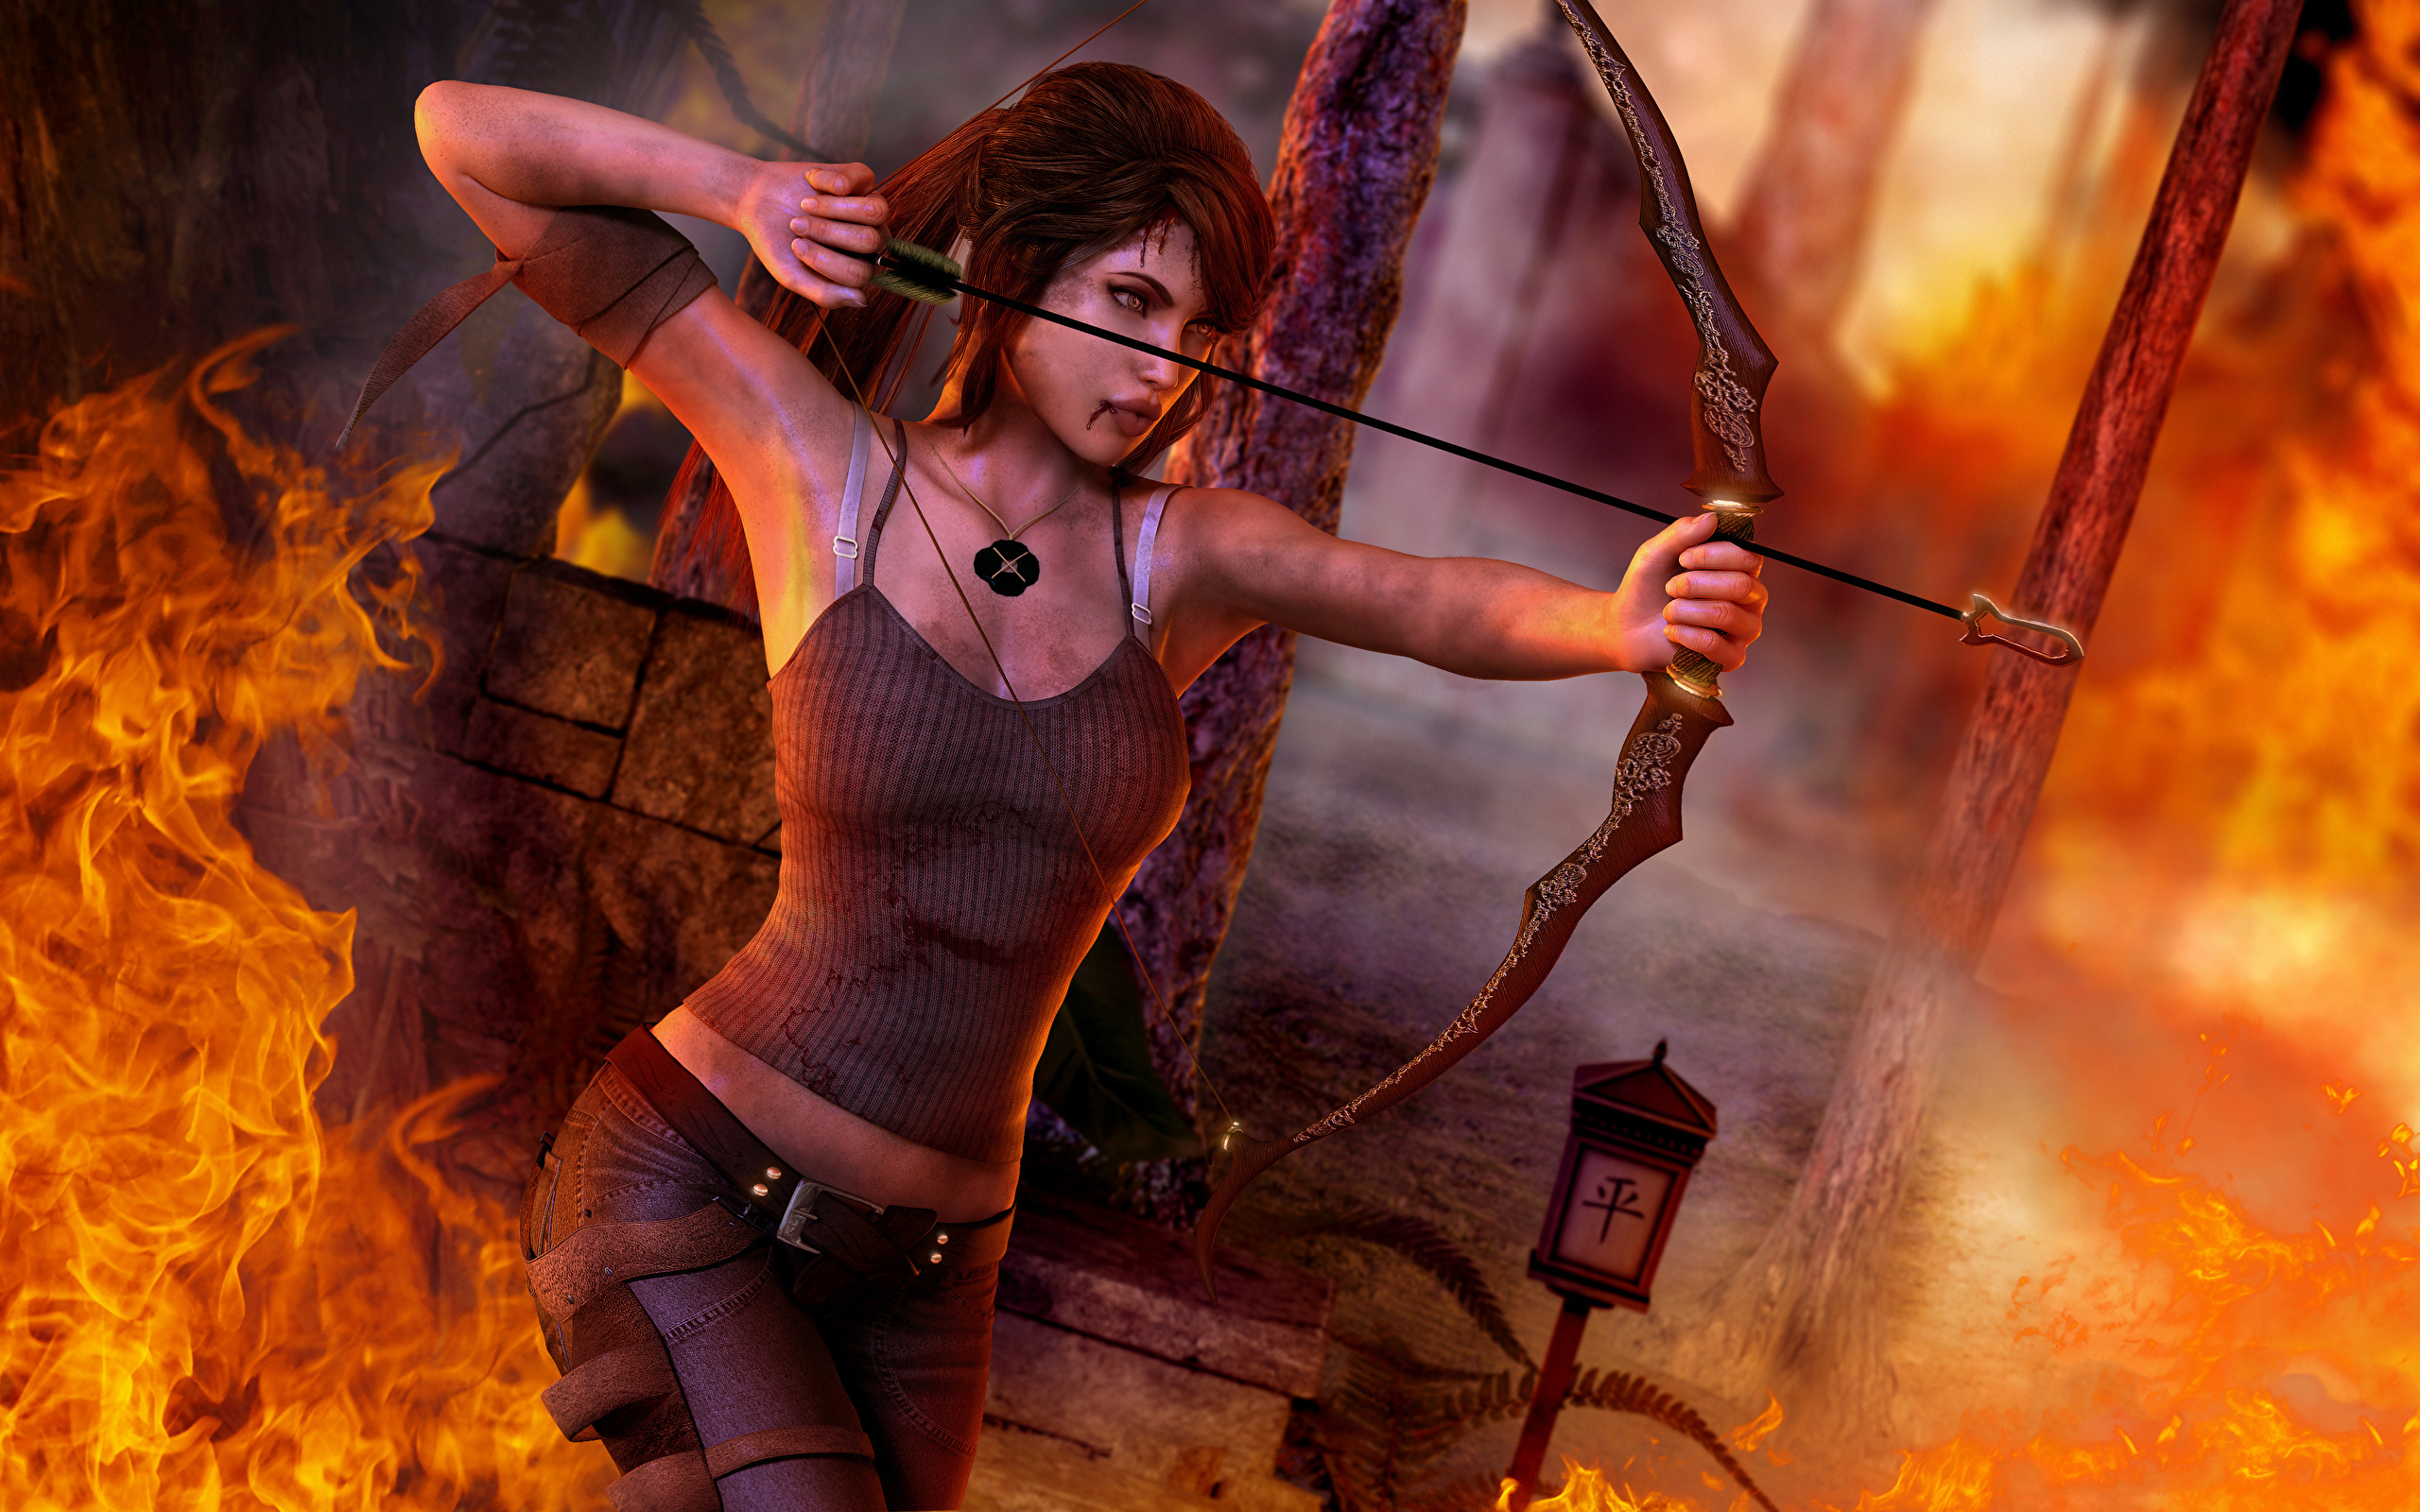 Lara croft goblin fuck torrent download porn photos